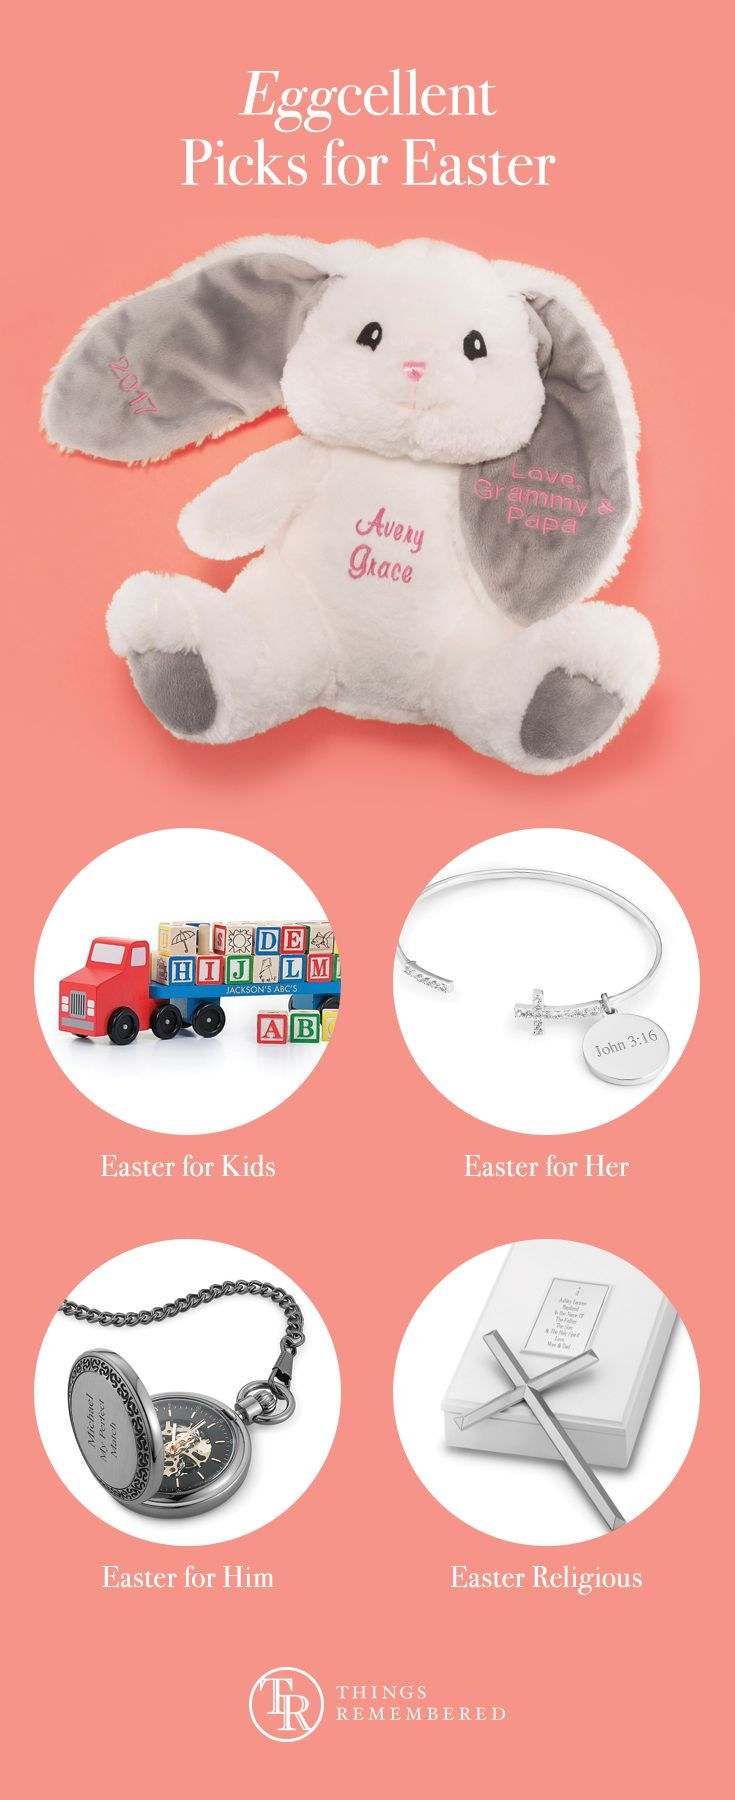 16 best kids gifts images on pinterest kids gifts childrens gifts create easter memories with personalized gifts for men women and kids from personalized easter baskets and stuffed bunnies to religious jewelry more negle Gallery